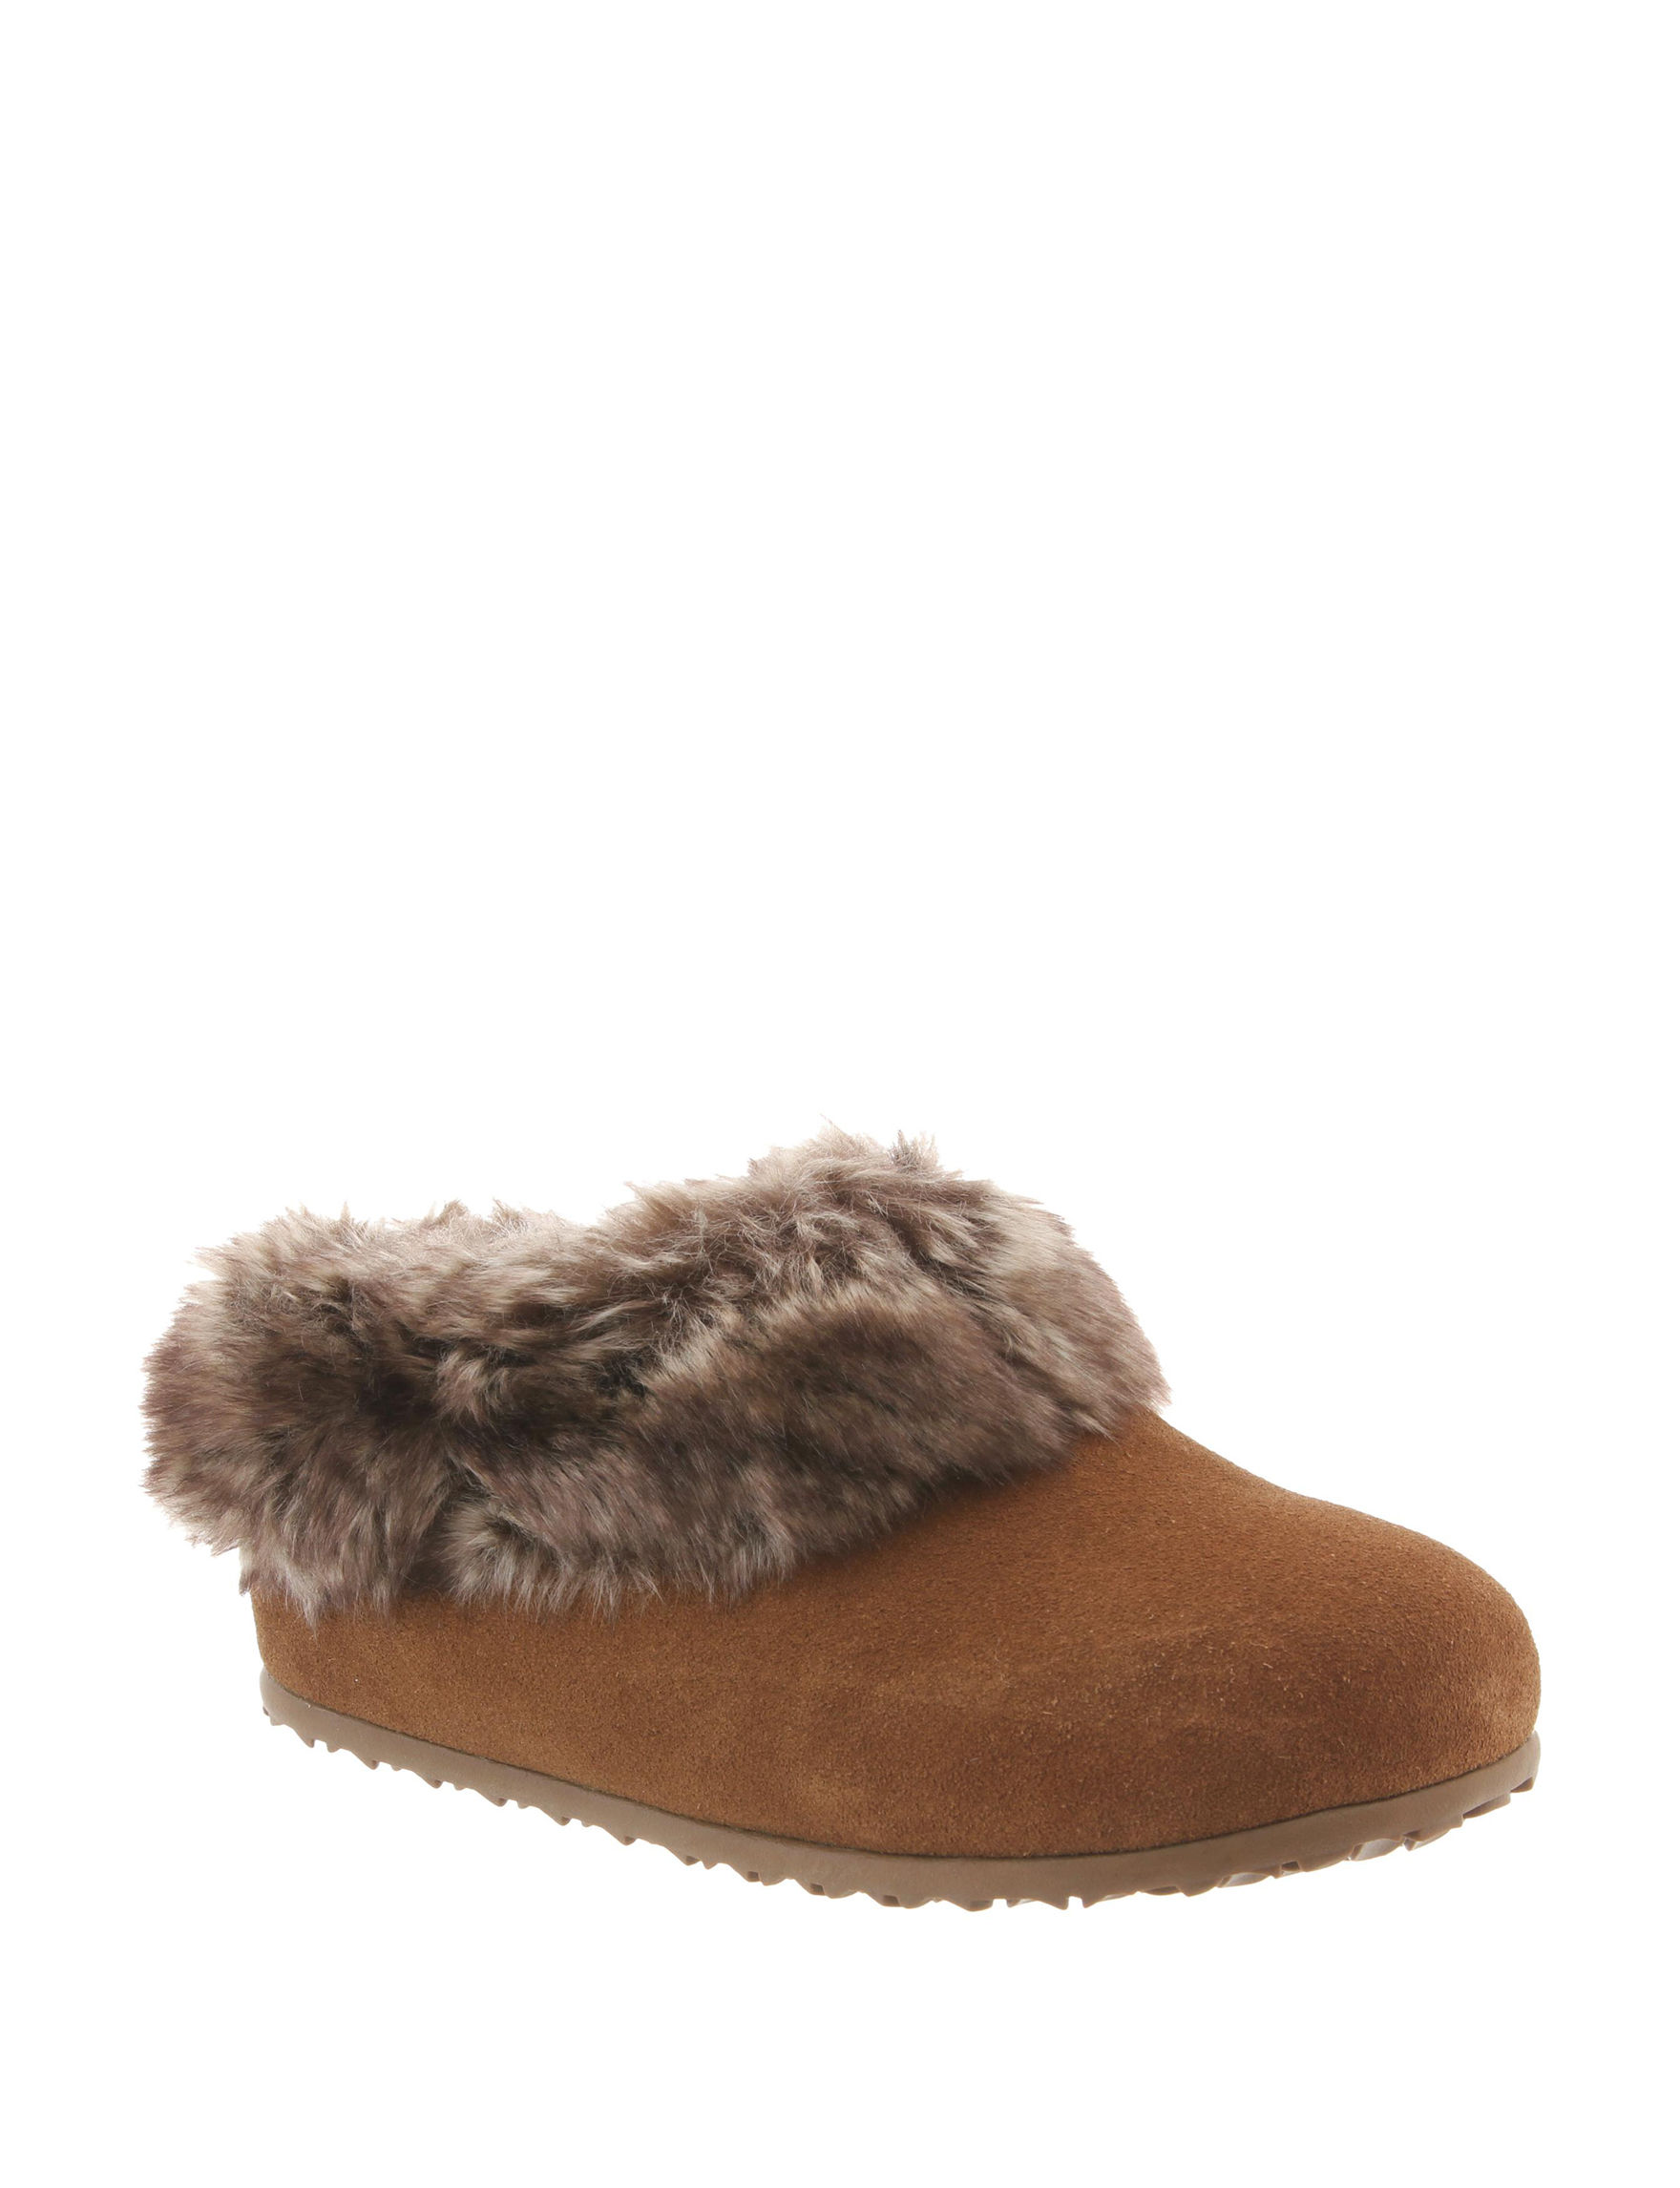 Bearpaw Brown Clogs Mules